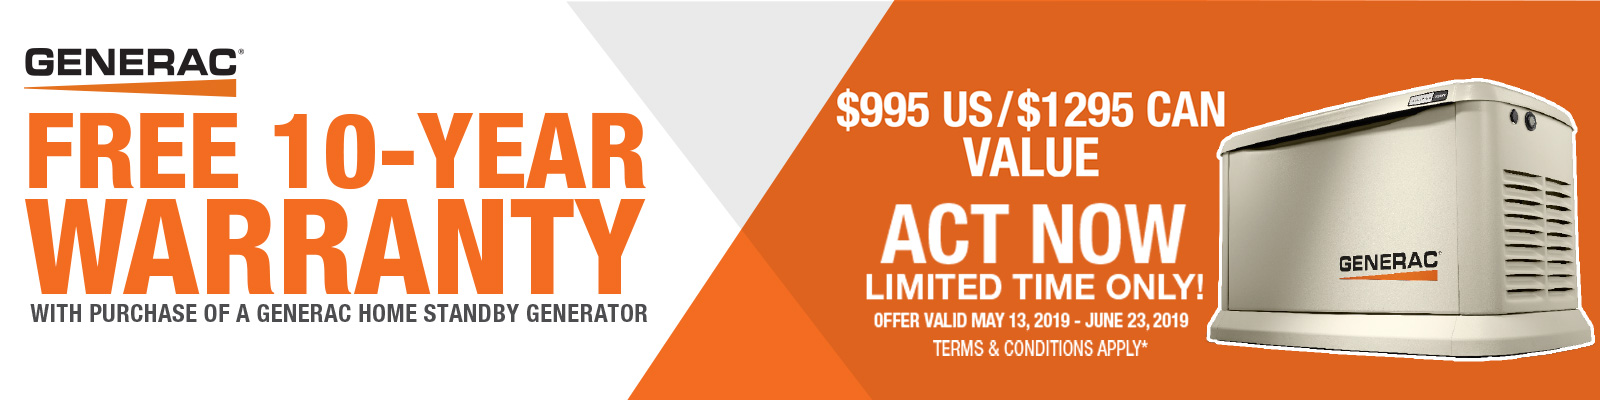 Free 10-Year Warranty with Purchase of Generac Home Standby Generator - Terms and Conditions Apply